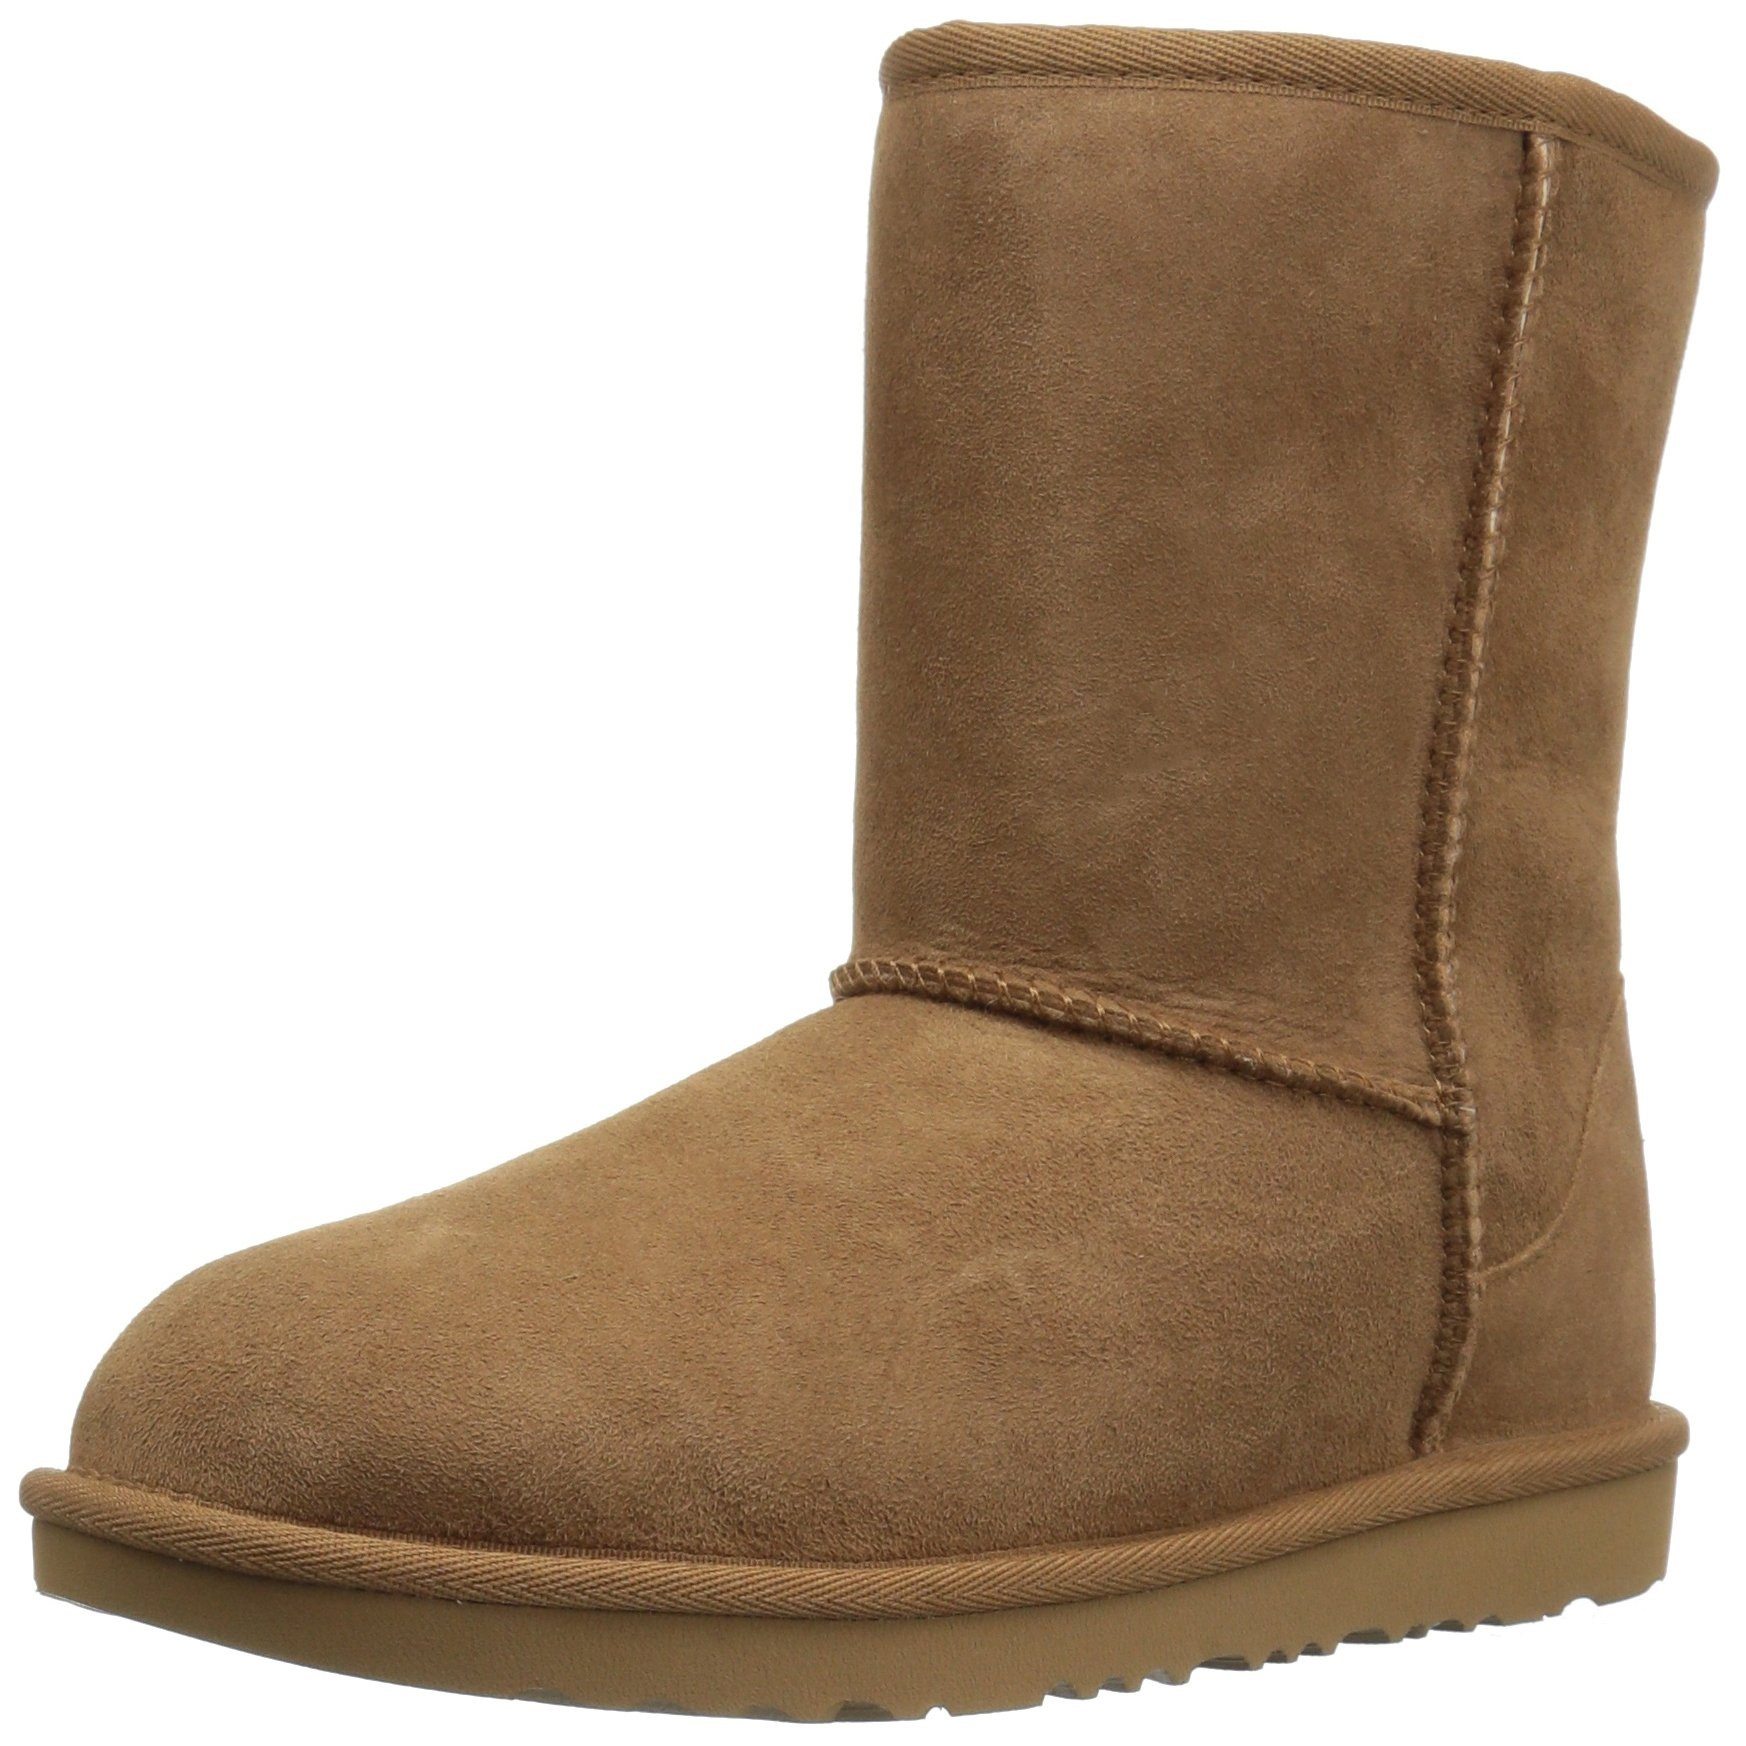 UGG Kids K Classic II Fashion Boot, Chestnut, 3 M US Little Kid by UGG